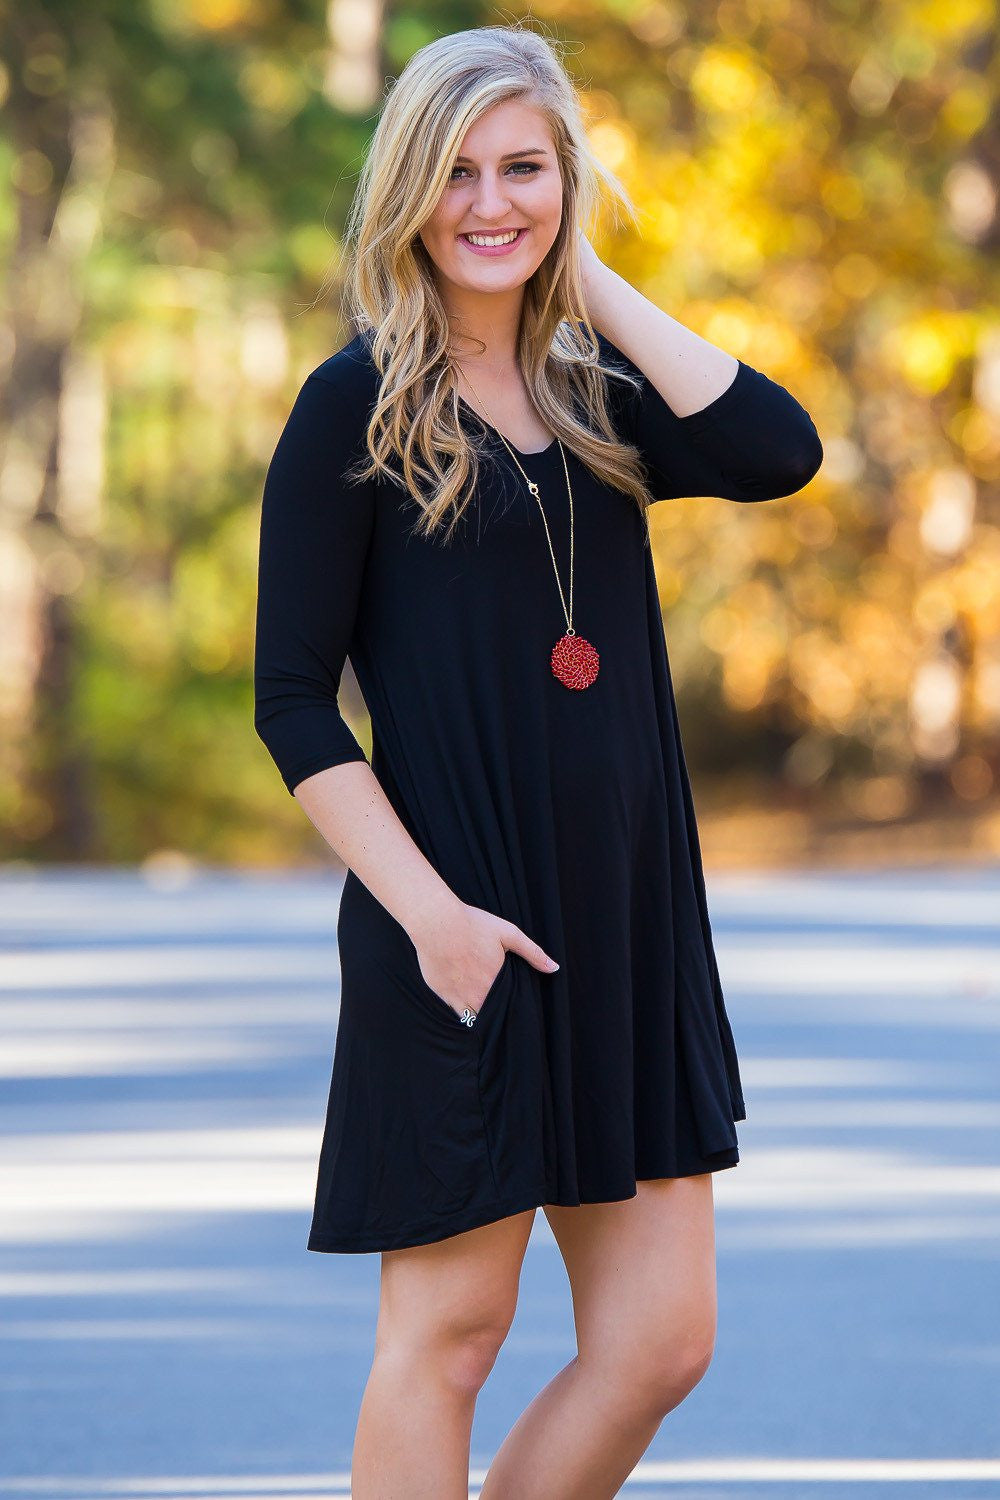 Piko 3/4 V-Neck Sleeve Swing Dress - Black - Piko Clothing